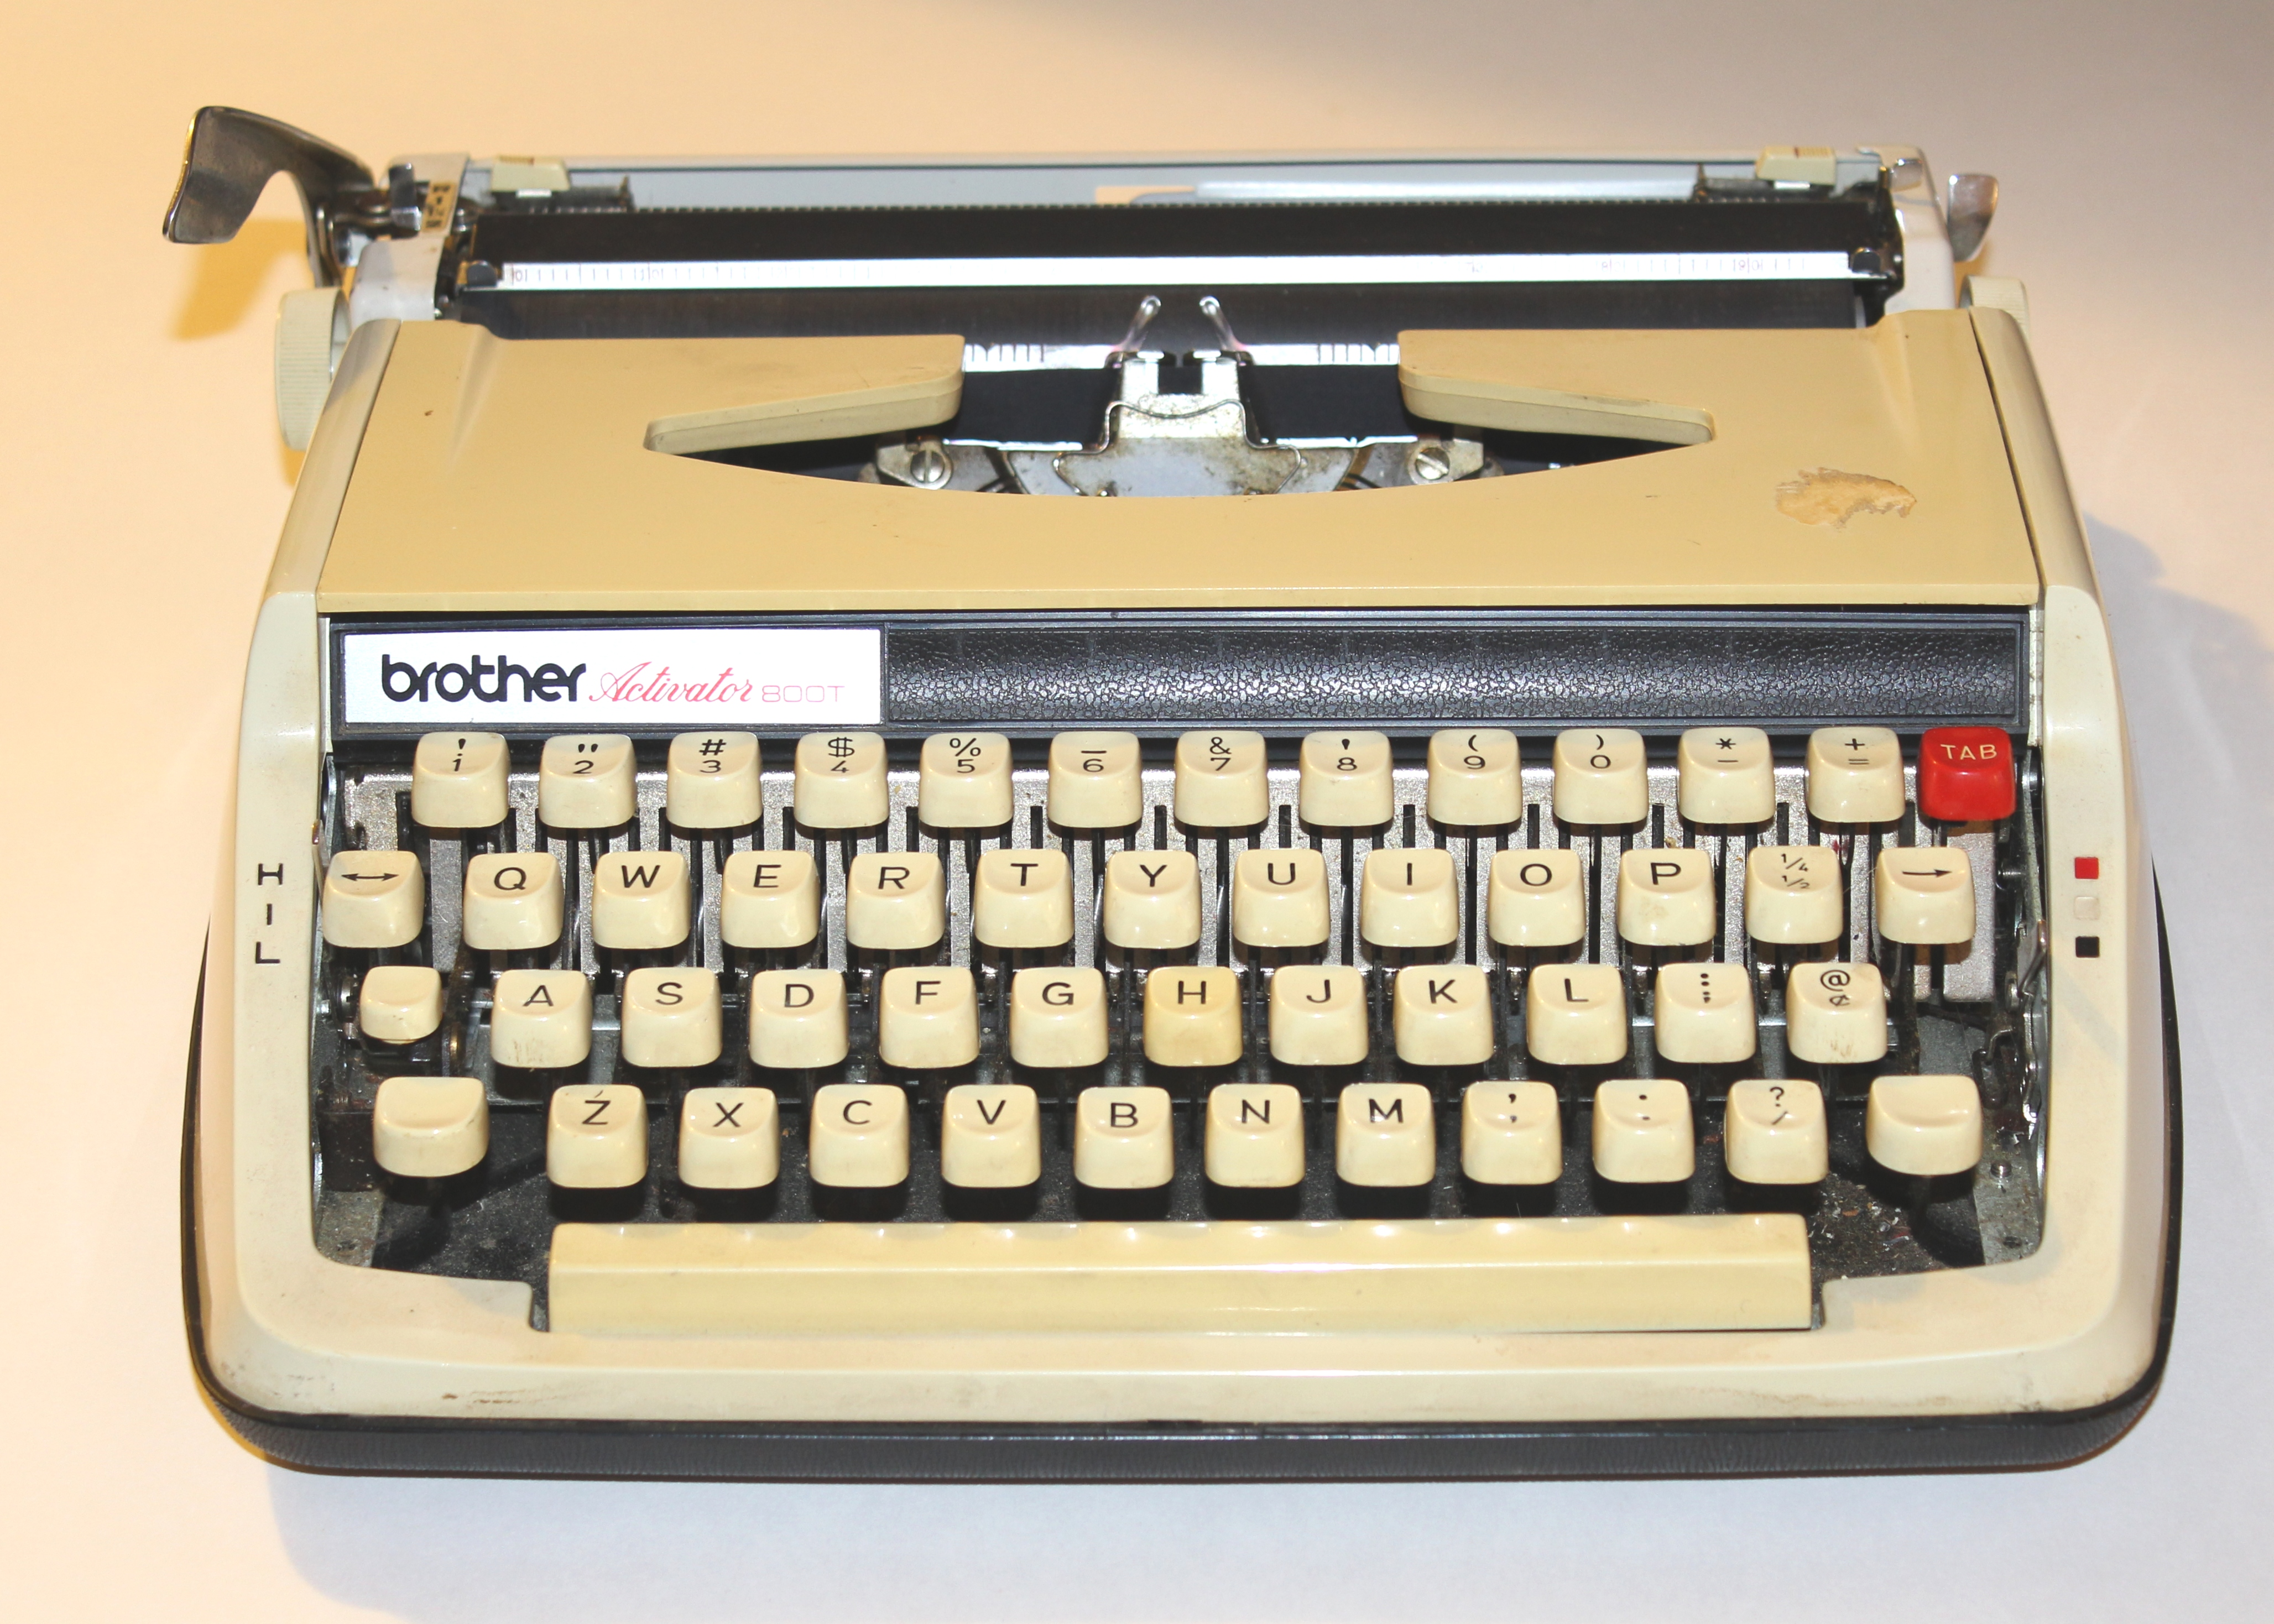 file brother activator 800t portable manual typewriter jpg rh commons wikimedia org brother typewriter manual gx-6750 brother typewriter manual ml 100